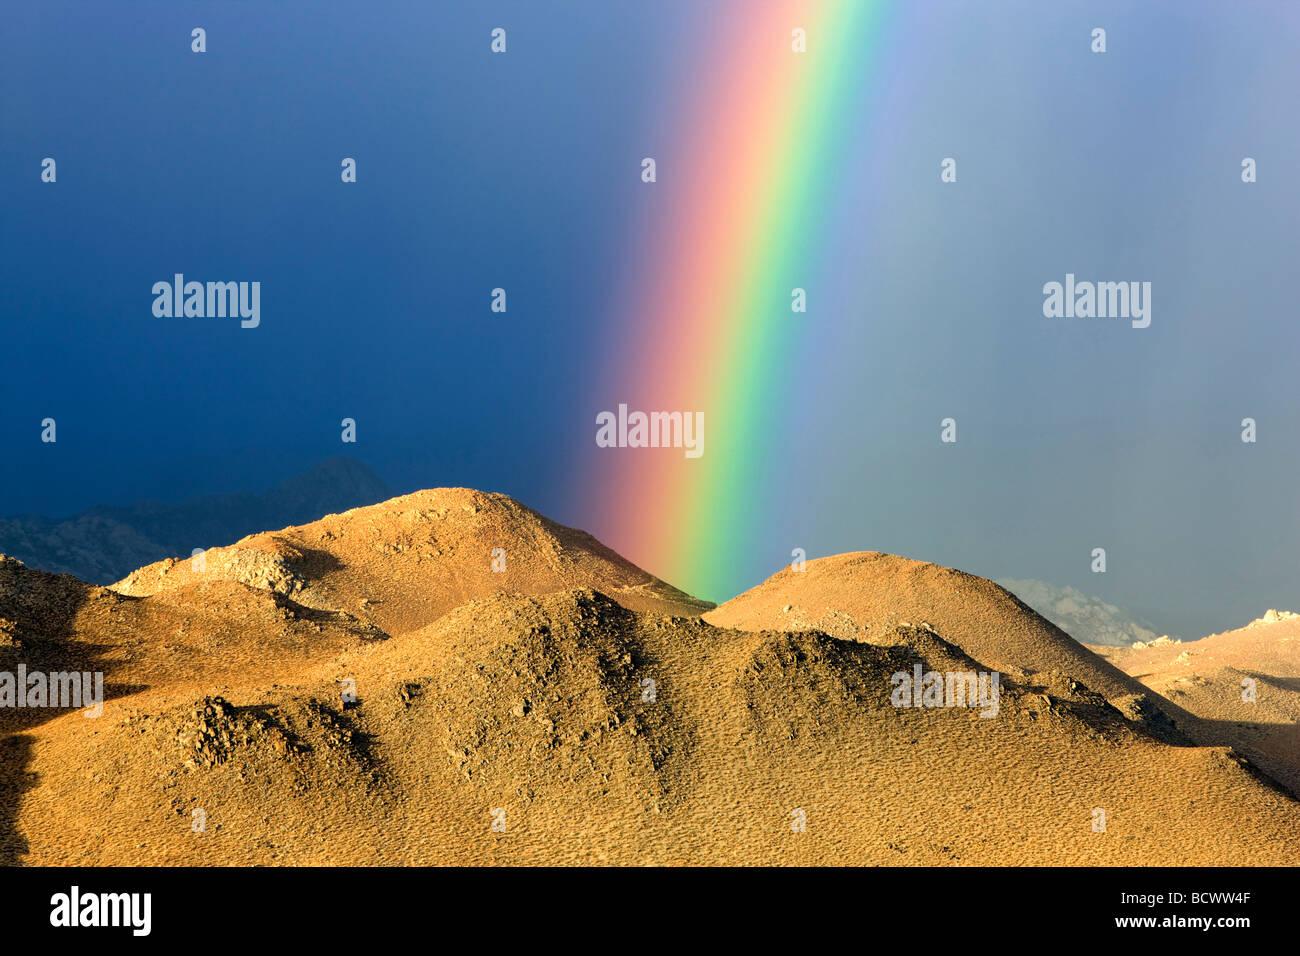 Rainbow over Eastern Sierra Mountains near Bishop California - Stock Image